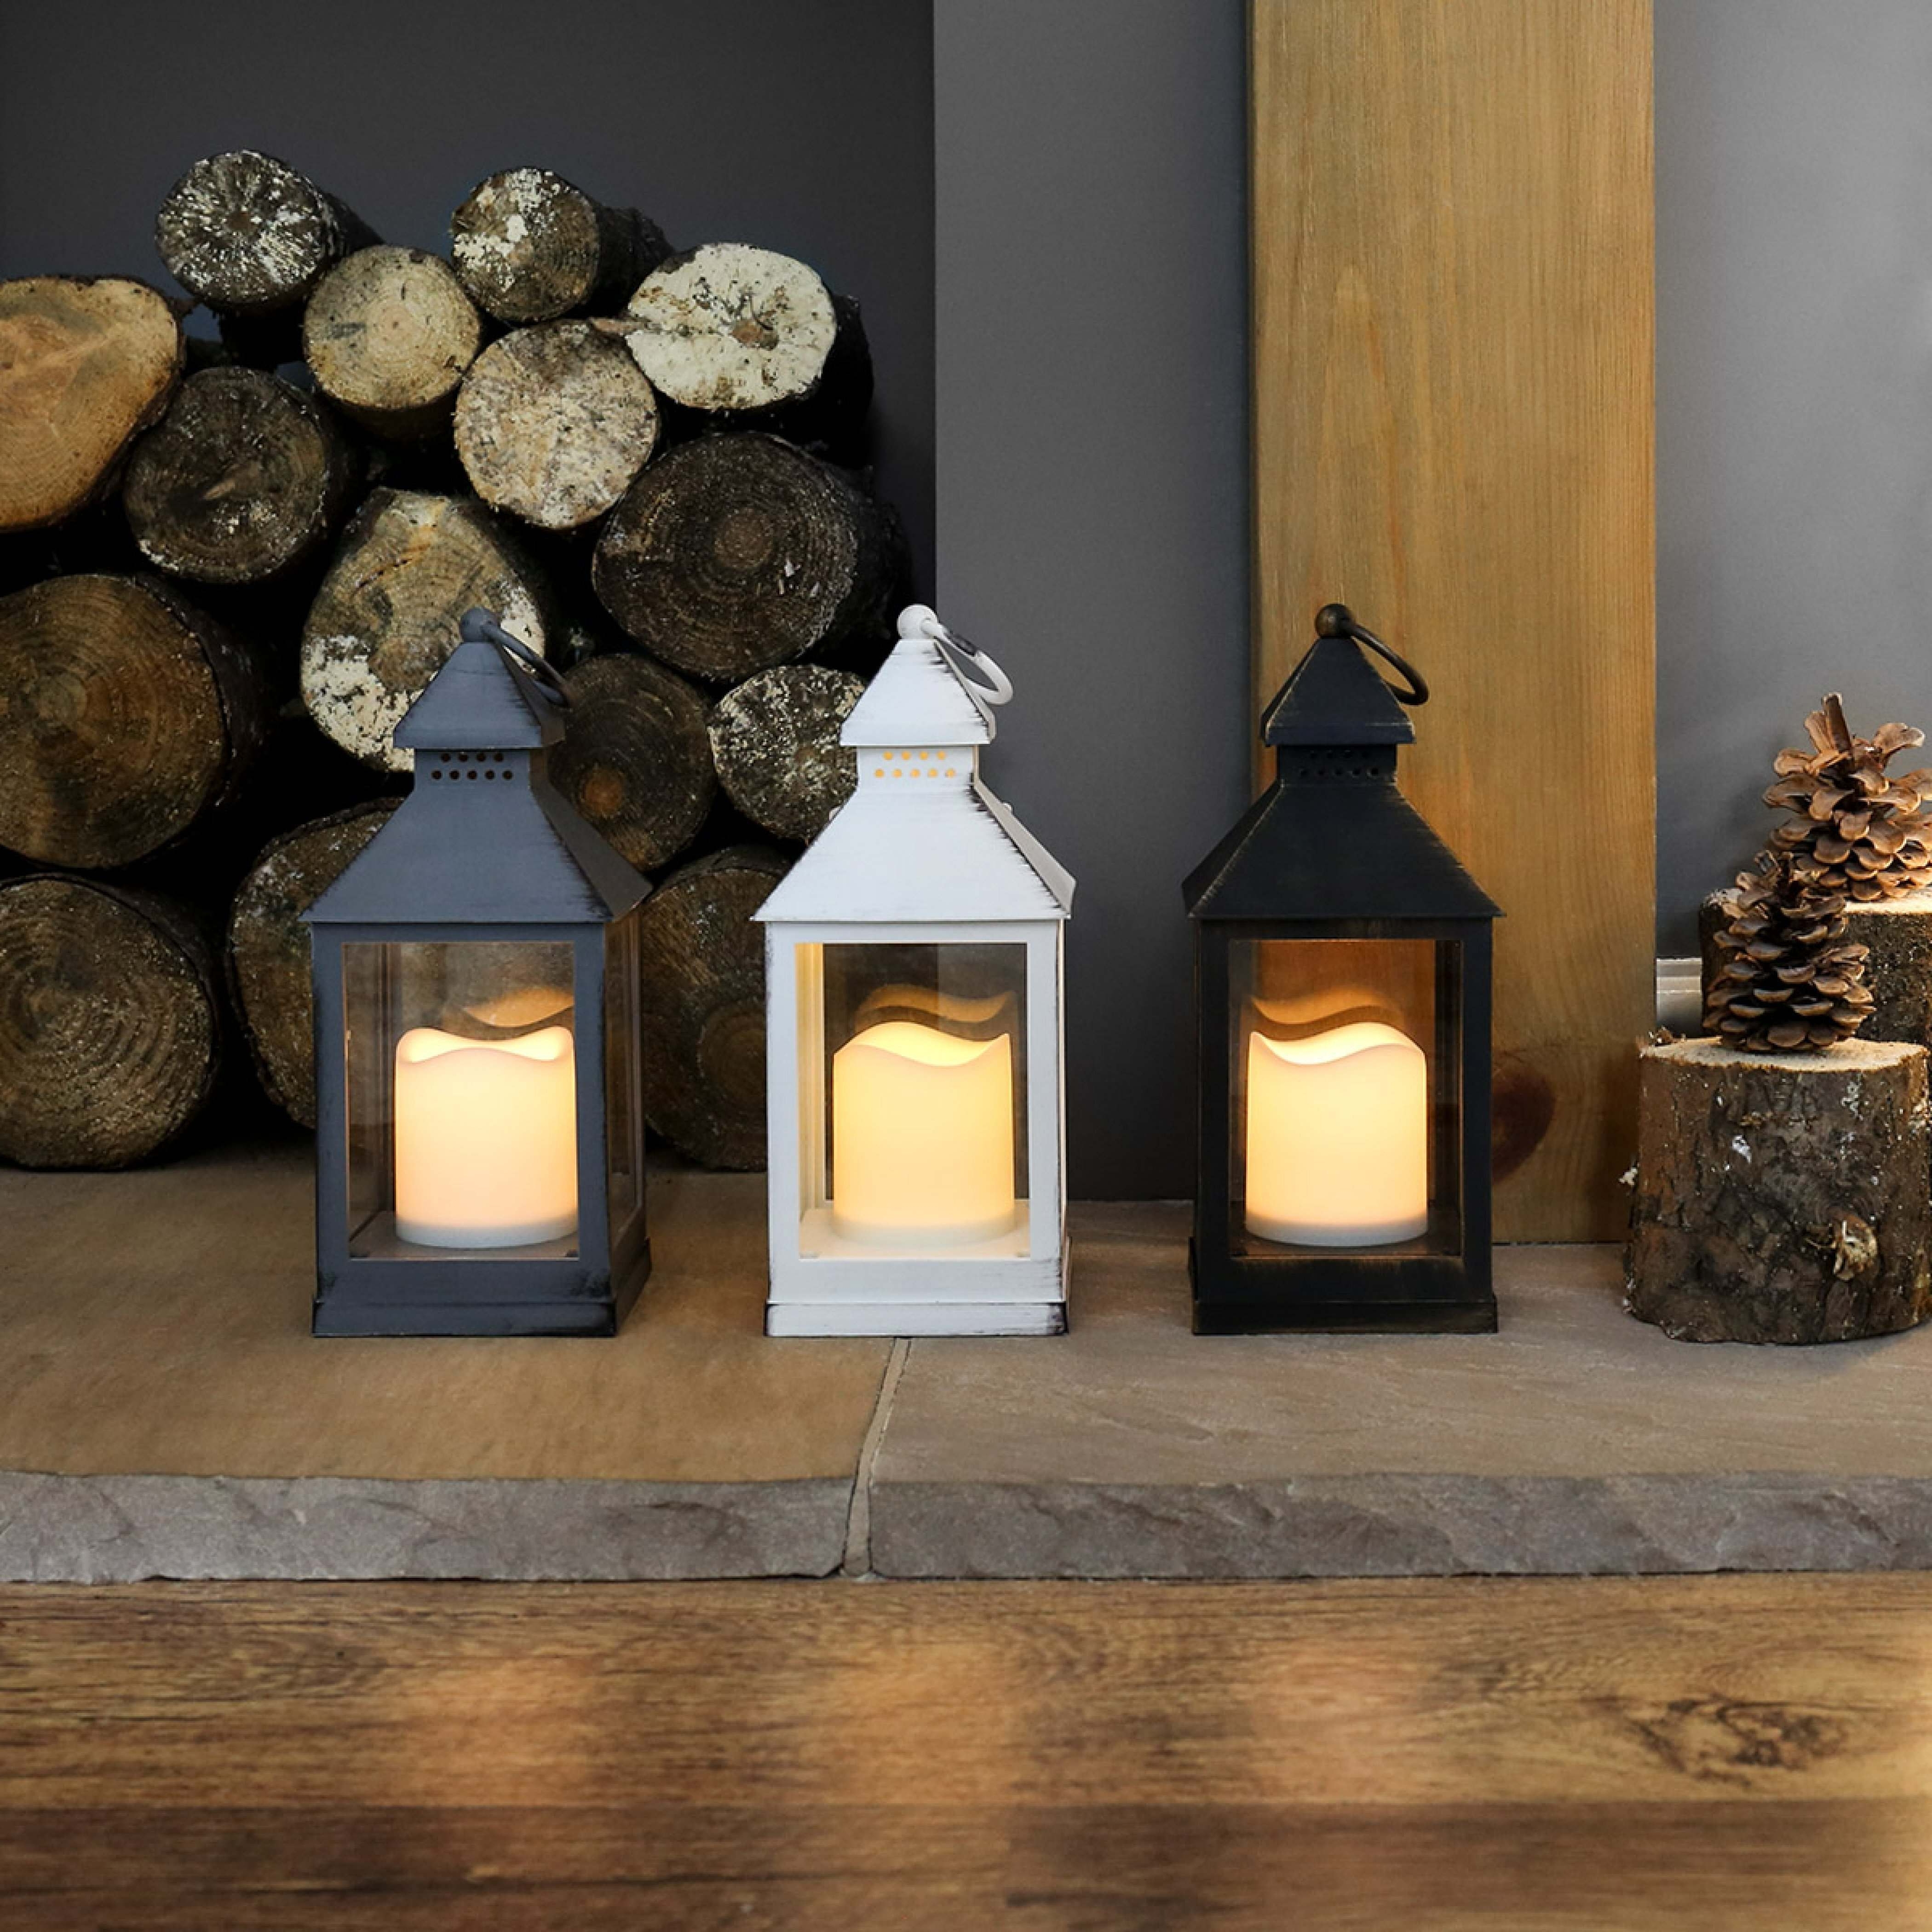 Outdoor Lanterns With Battery Candles Pertaining To Well Known Outdoor Battery Flickering Candle Lantern, 24cm (View 7 of 20)